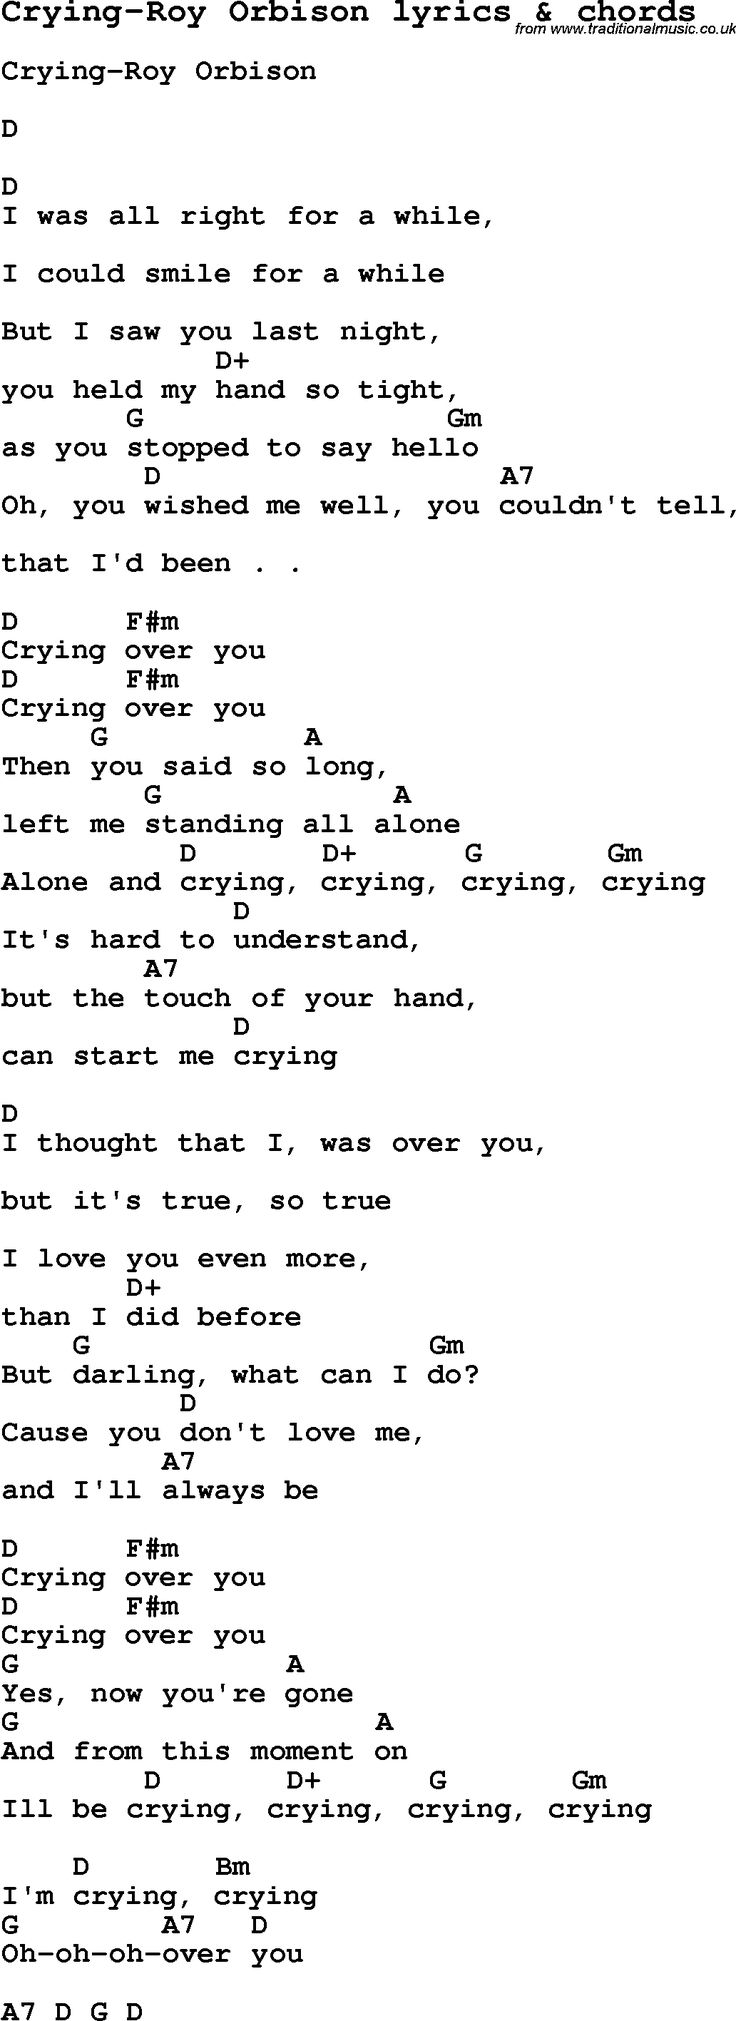 2398 best lyrical images on pinterest guitars lord and music love song lyrics for crying roy orbison with chords for ukulele guitar banjo hexwebz Image collections